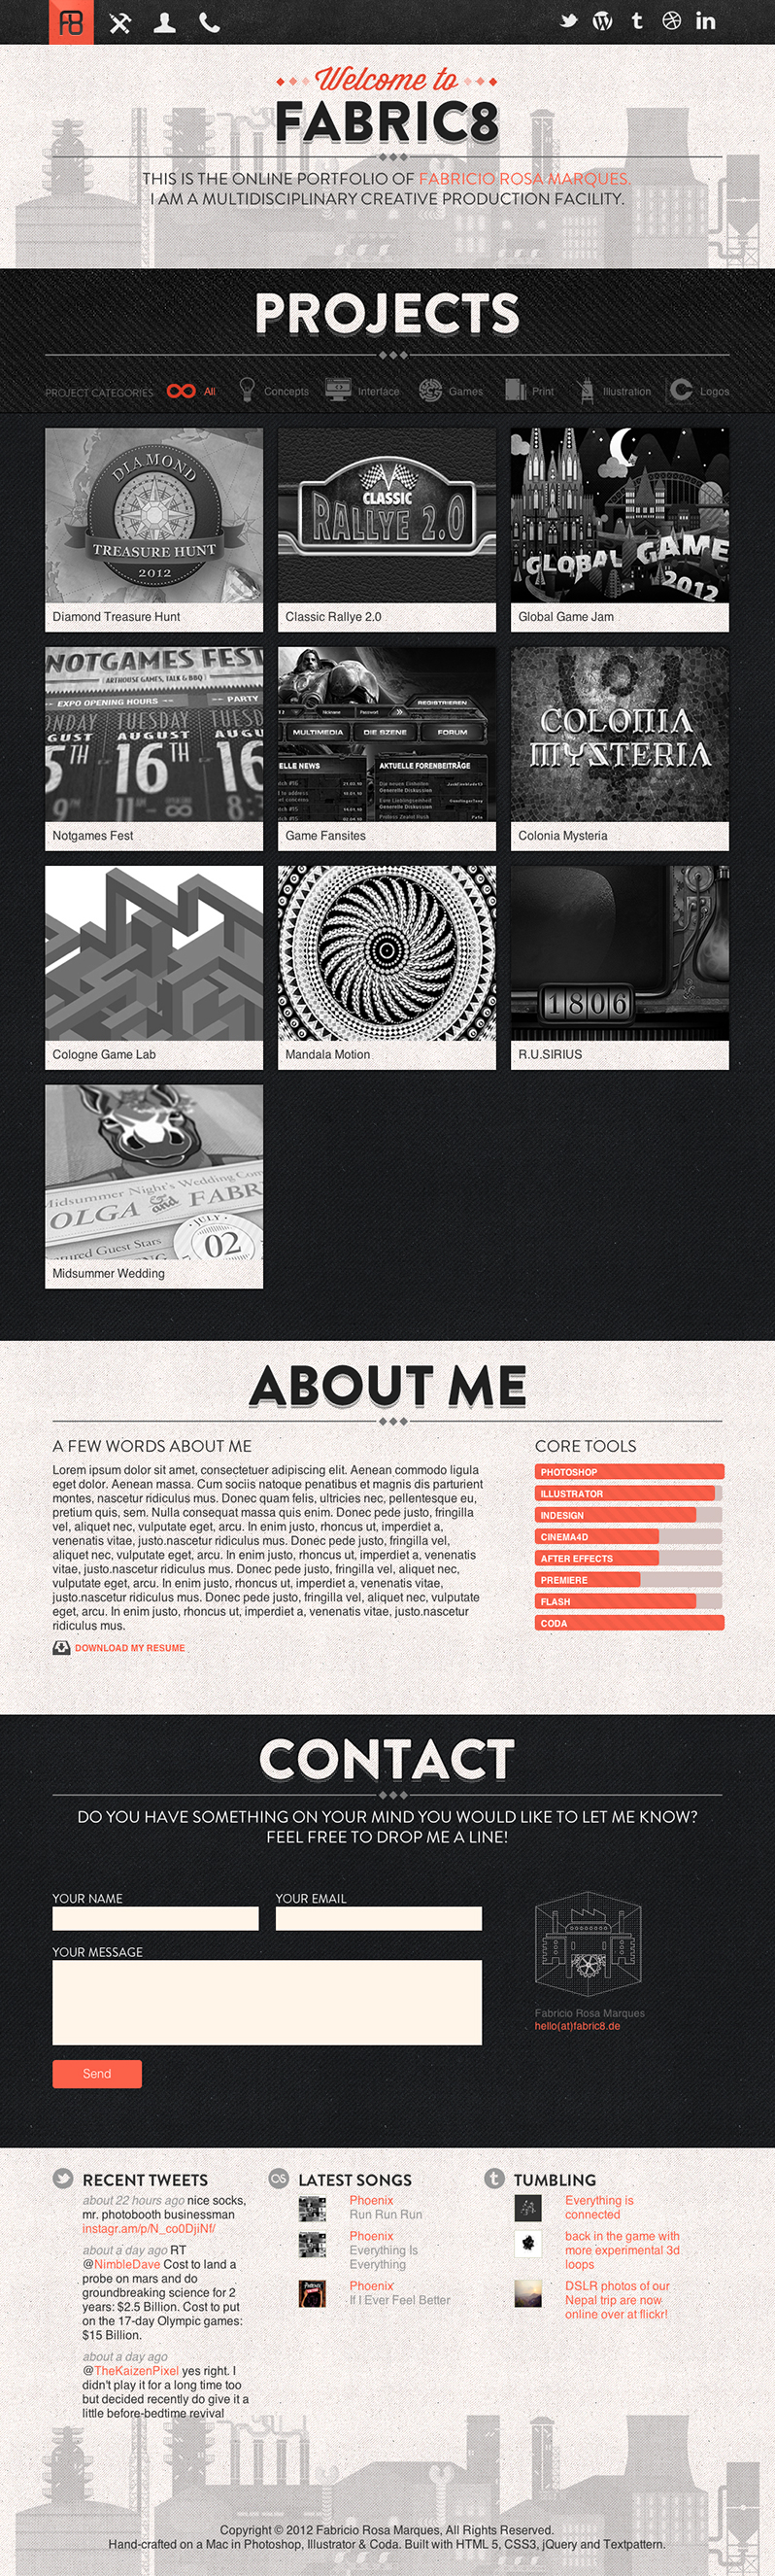 fabric8 full 15 Stylish Examples of Portfolio Web Design | Inspiration